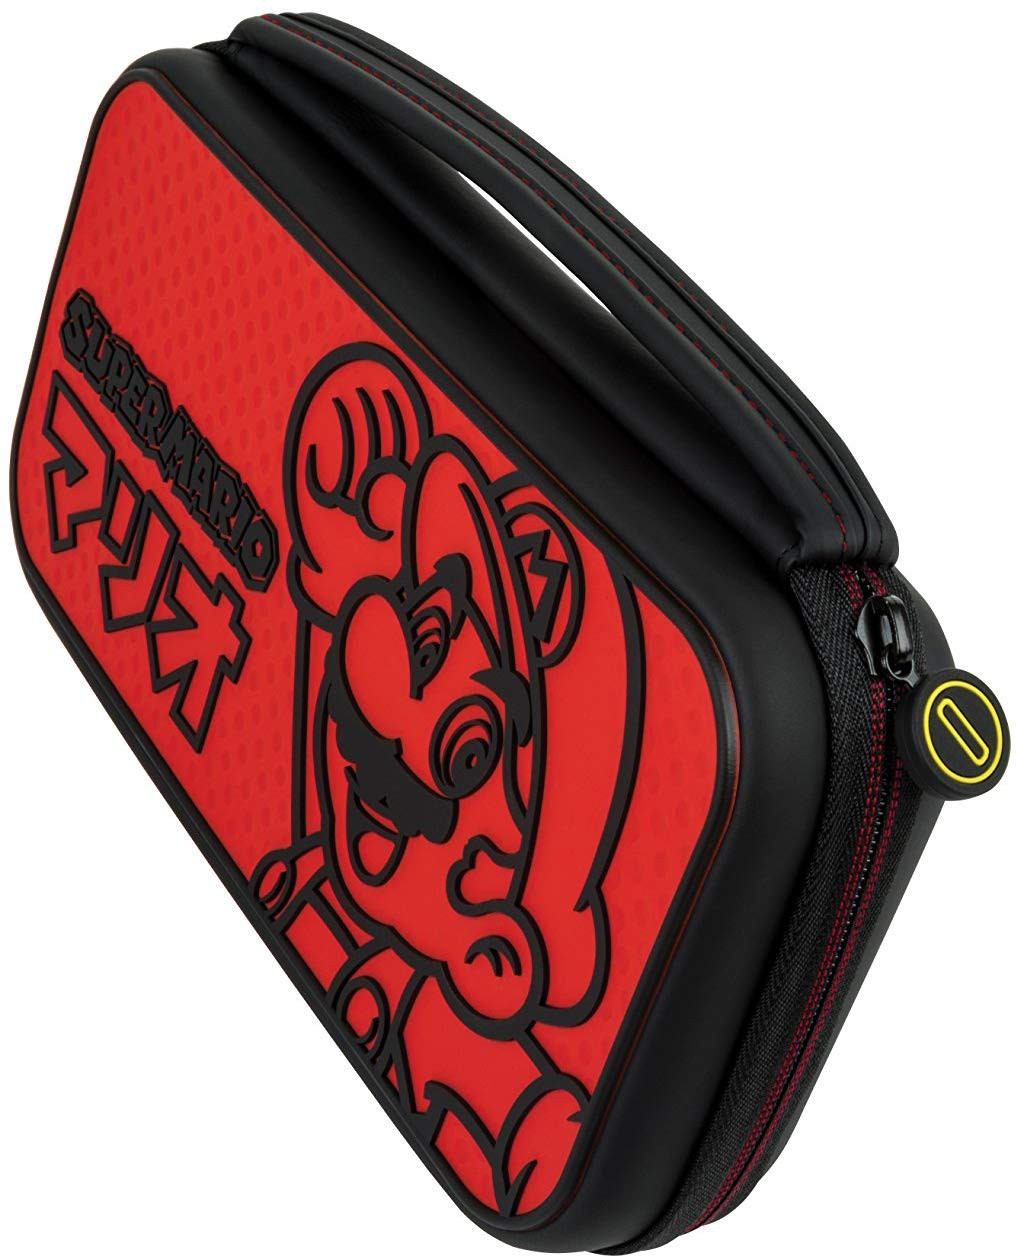 PDP Deluxe Console Case - Mario Kana Edition For Nintendo Switch